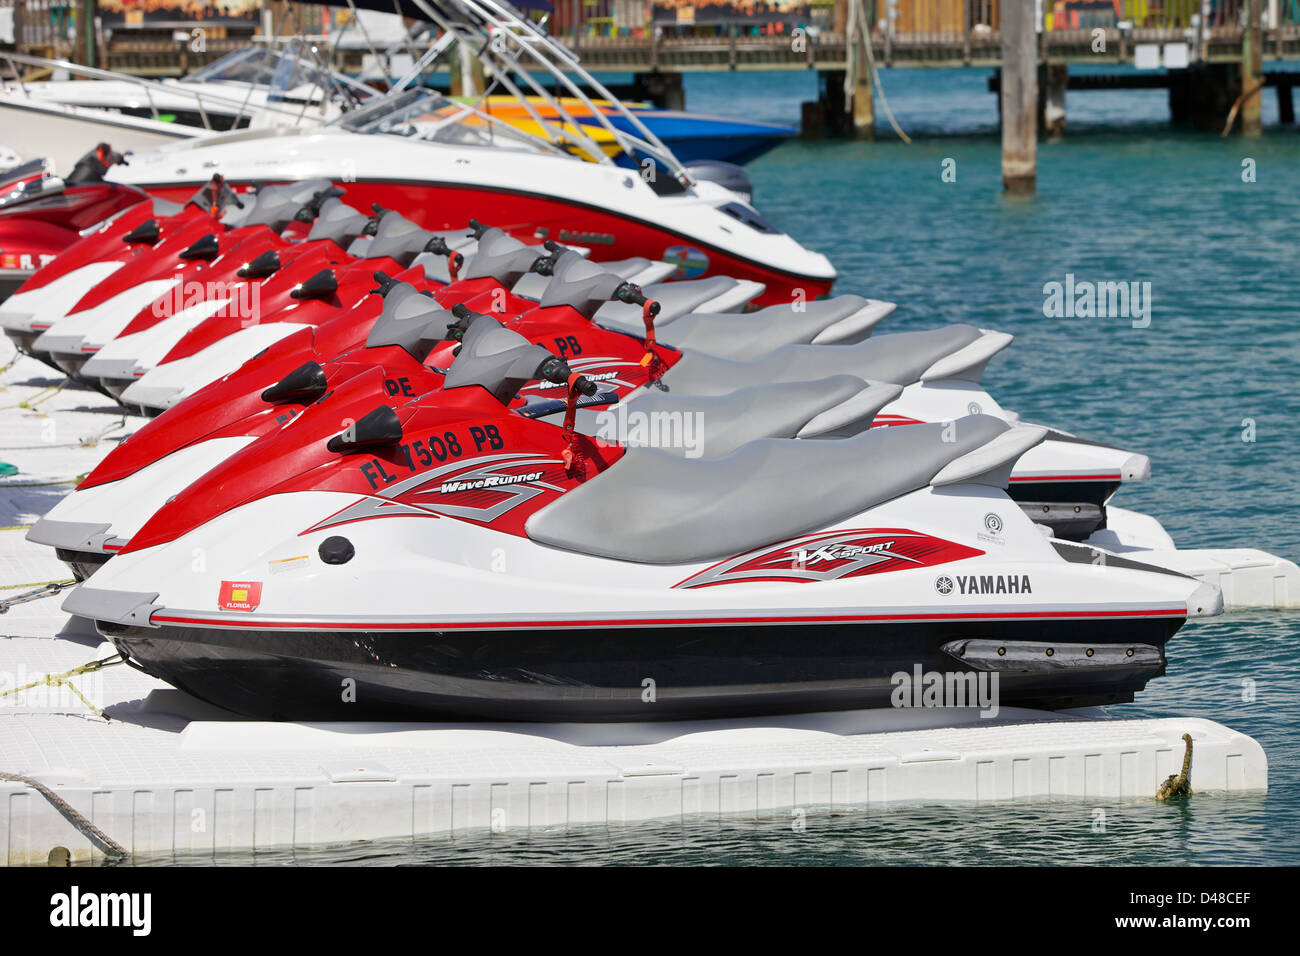 Personal watercraft lined up in a harbor - Stock Image